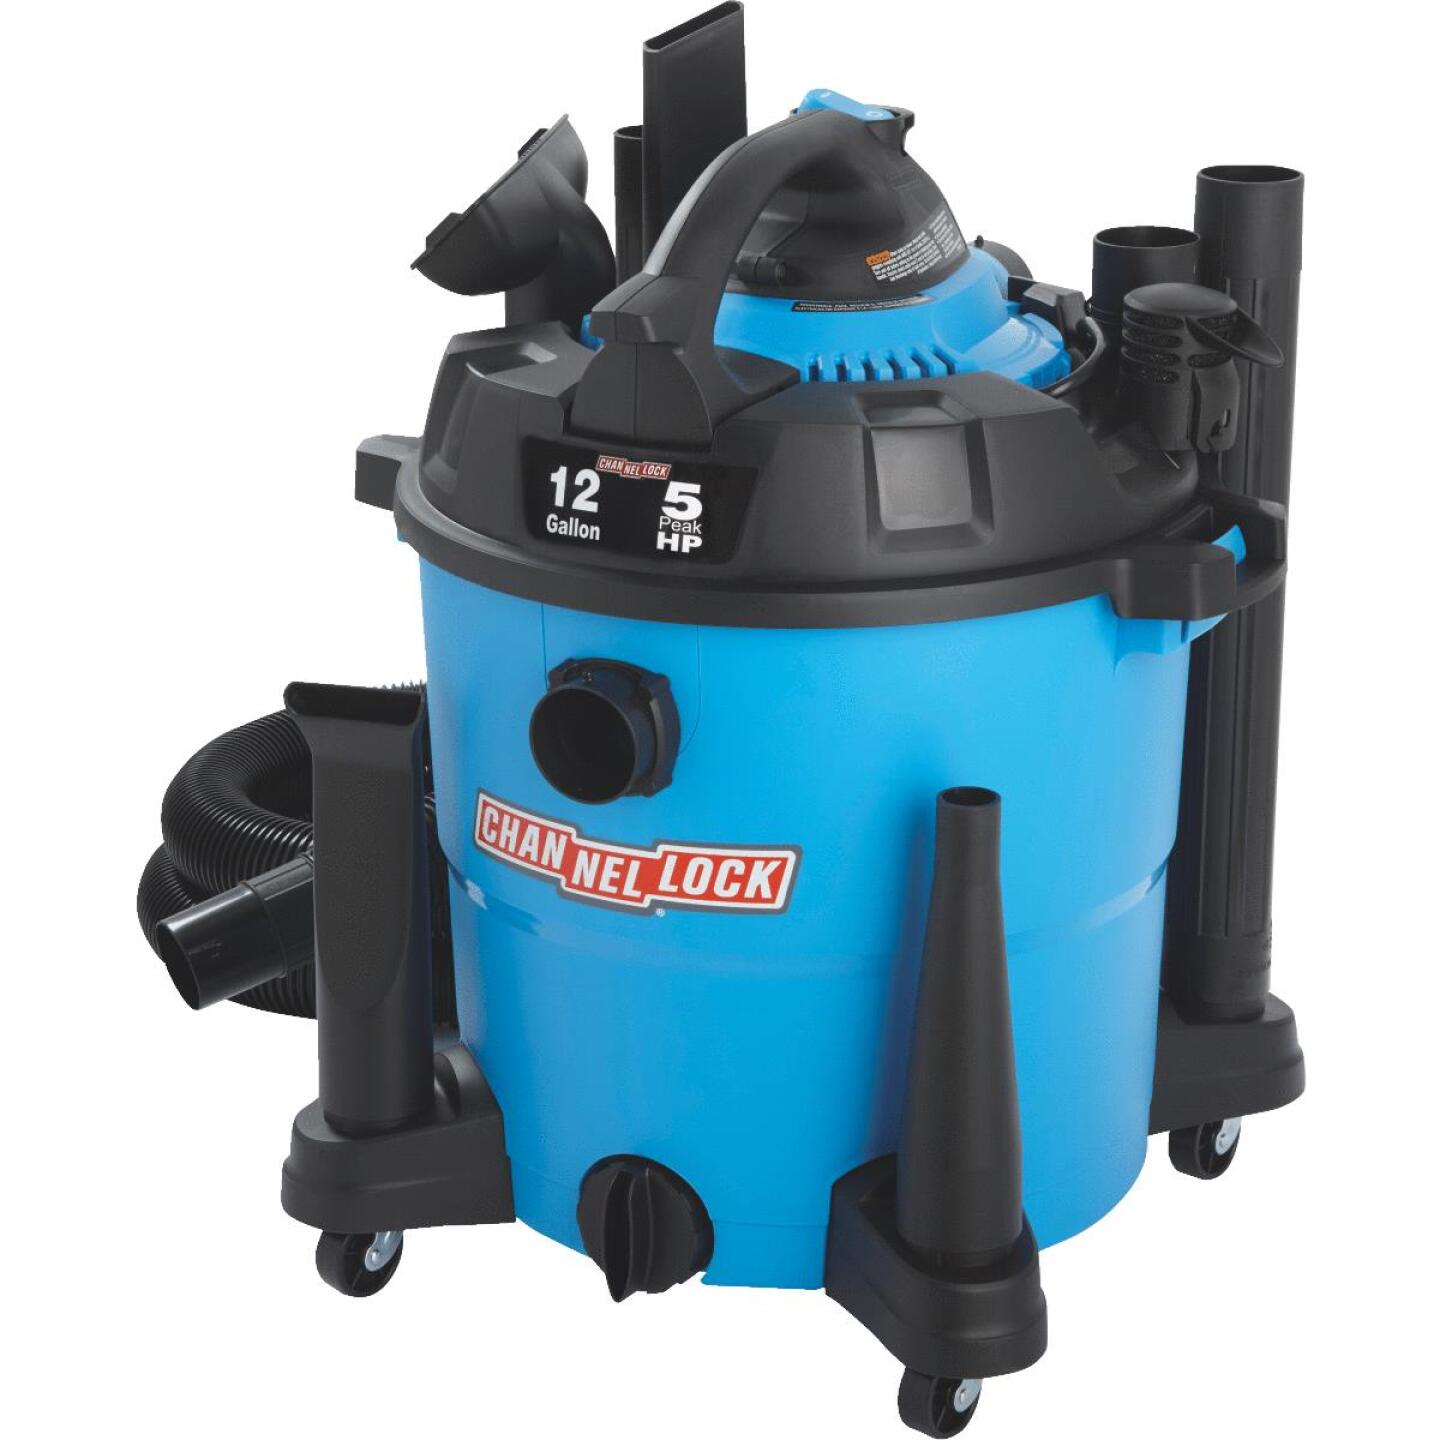 Channellock 12 Gal. 5.0-Peak HP Wet/Dry Vacuum with Blower Image 6